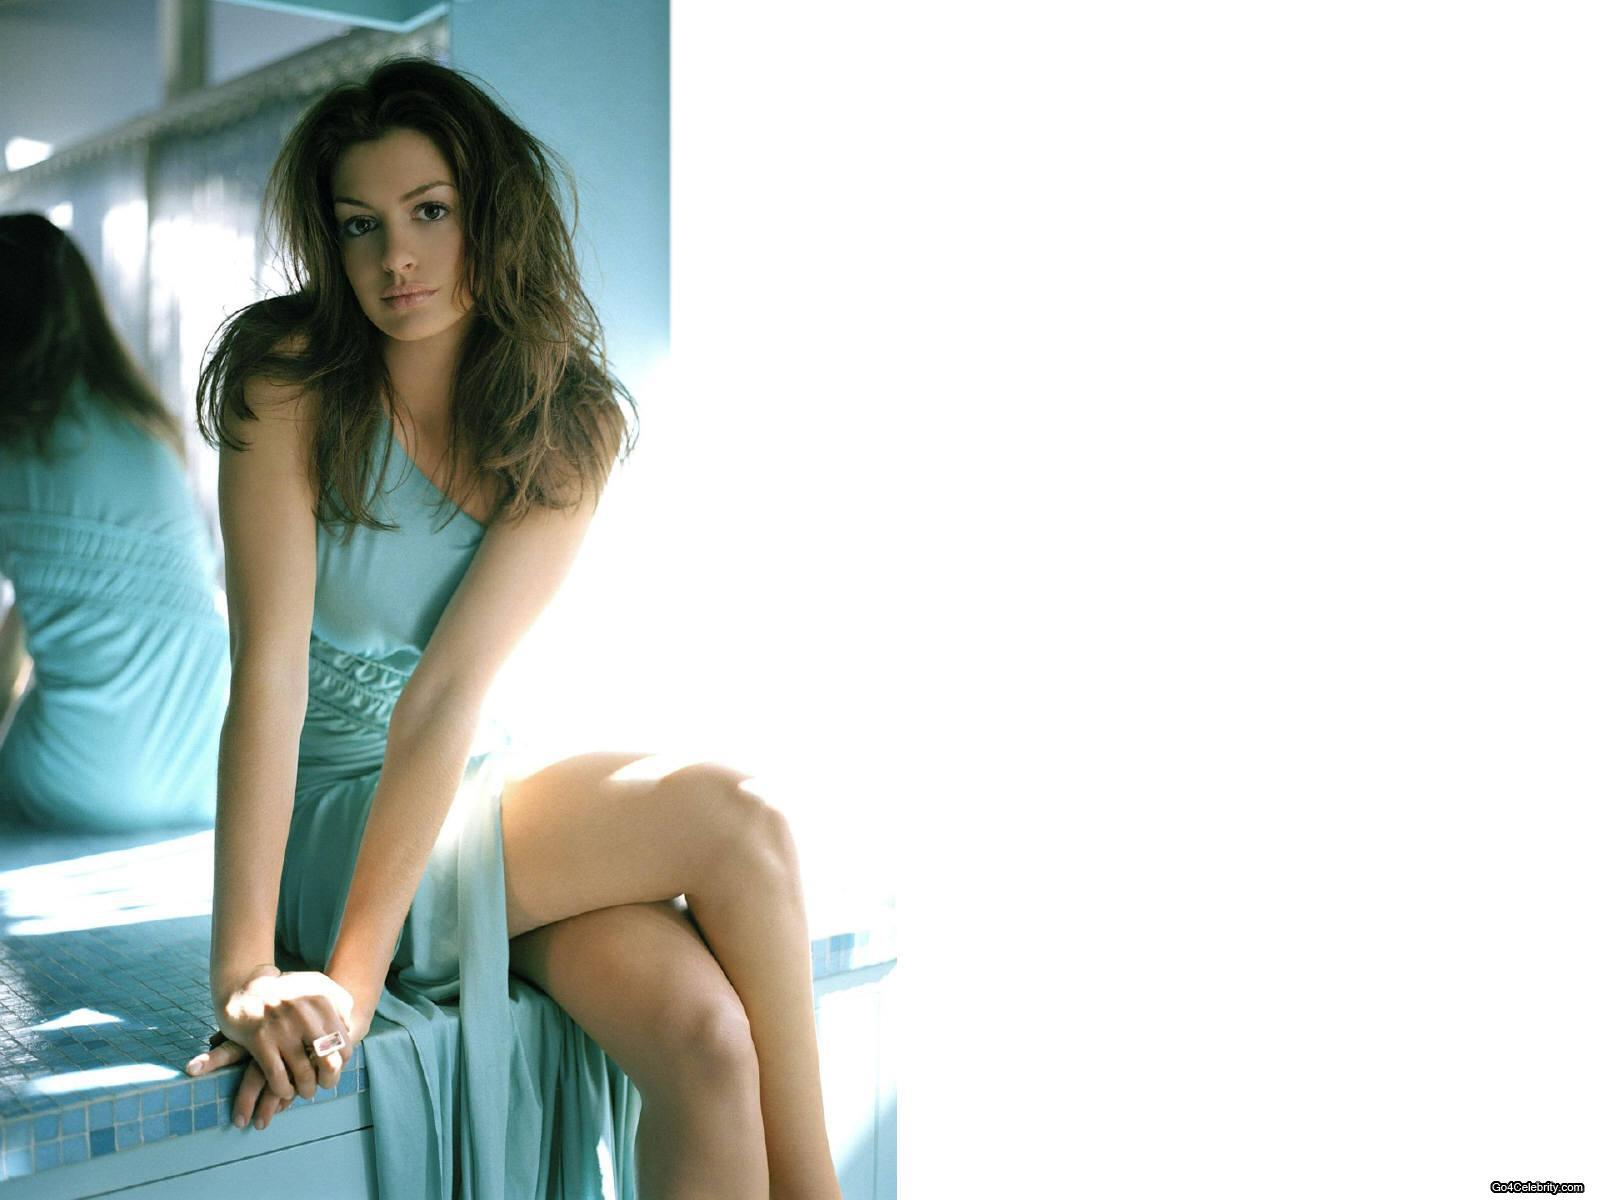 Anne Hathaway Download Free Backgrounds HD